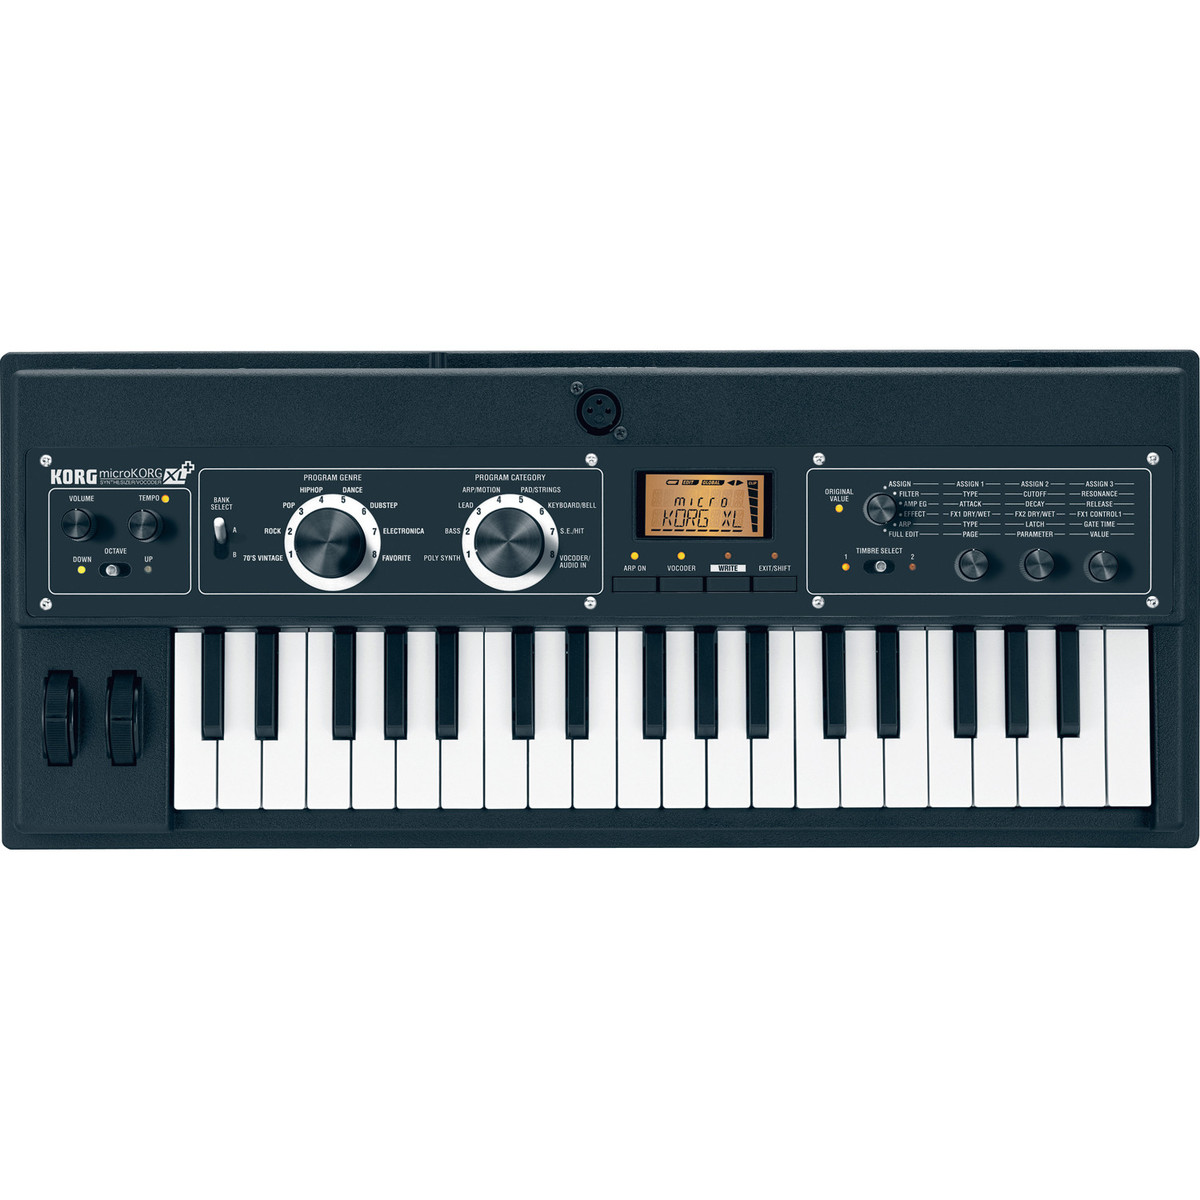 MICROKORG XL DRIVERS FOR WINDOWS VISTA